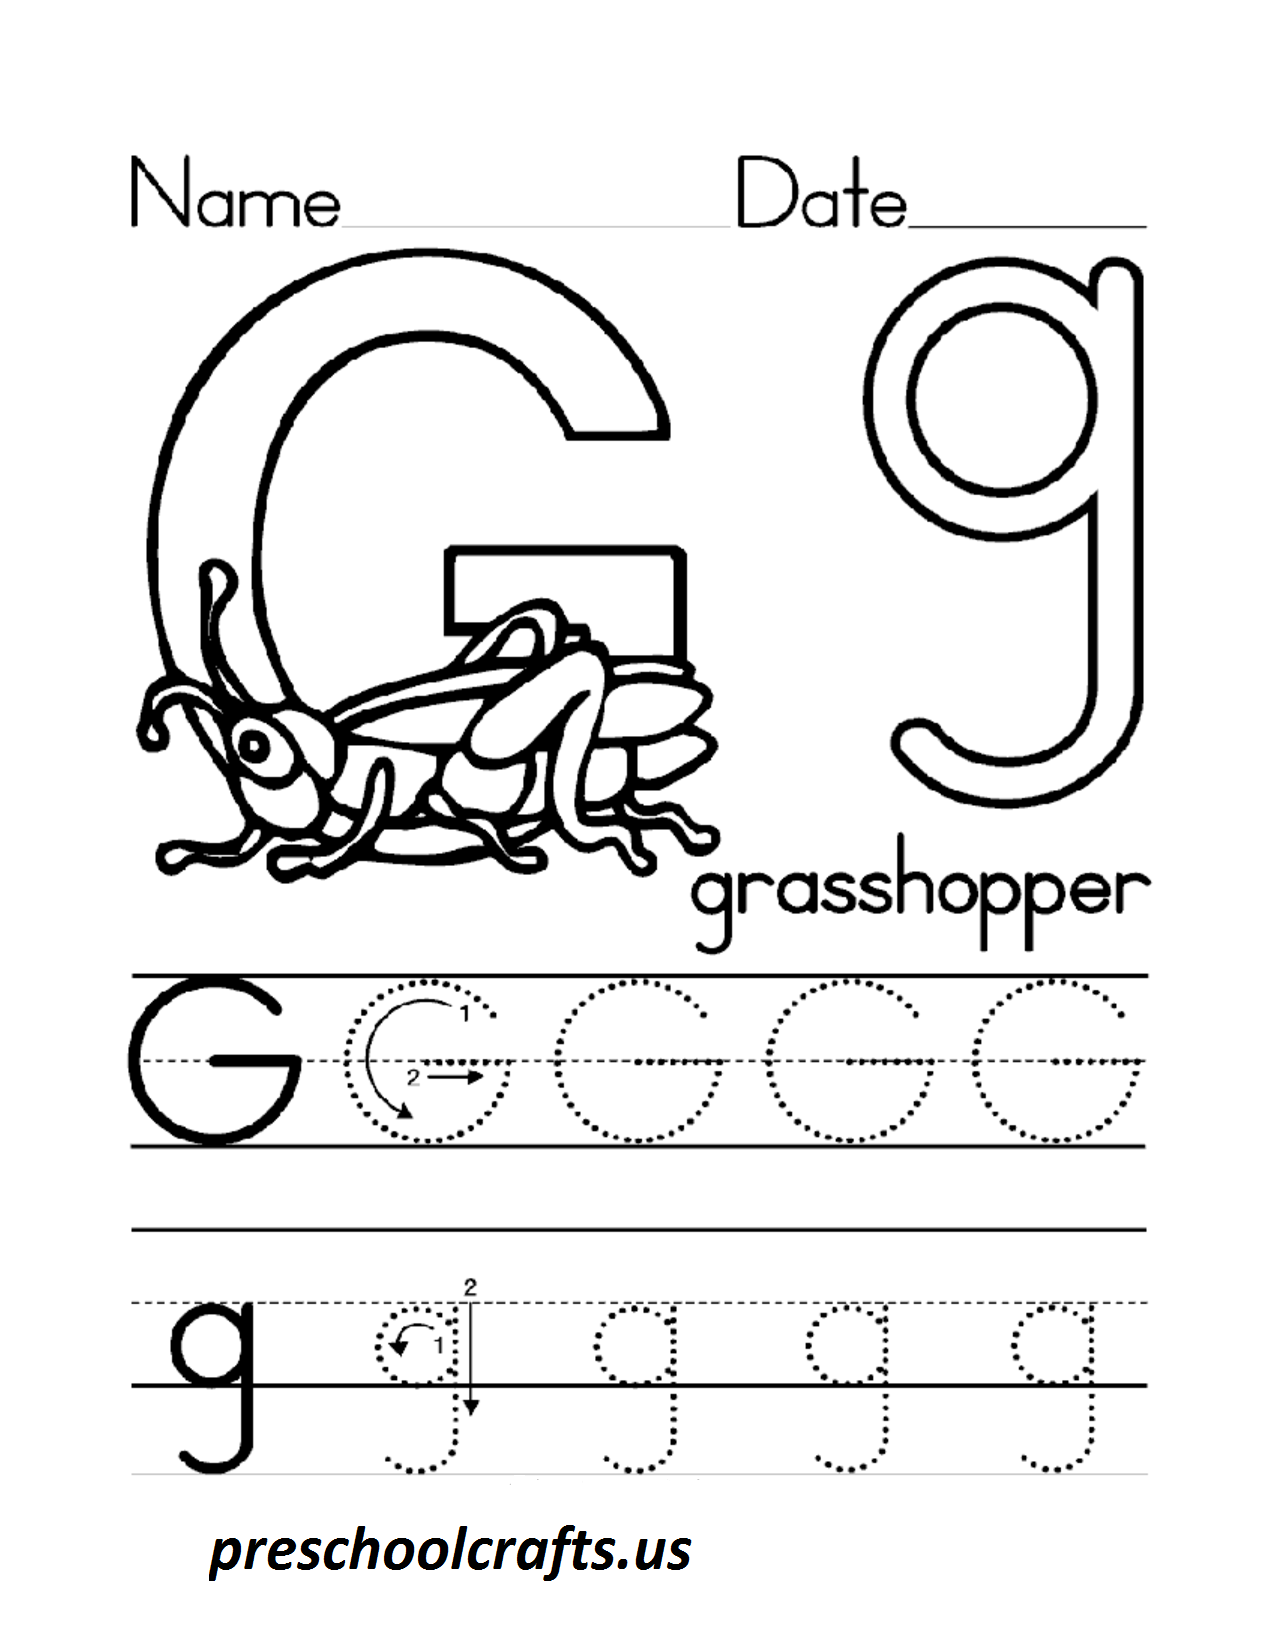 worksheet Alphabet Worksheets For Preschool letter g worksheets for preschool crafts preschool